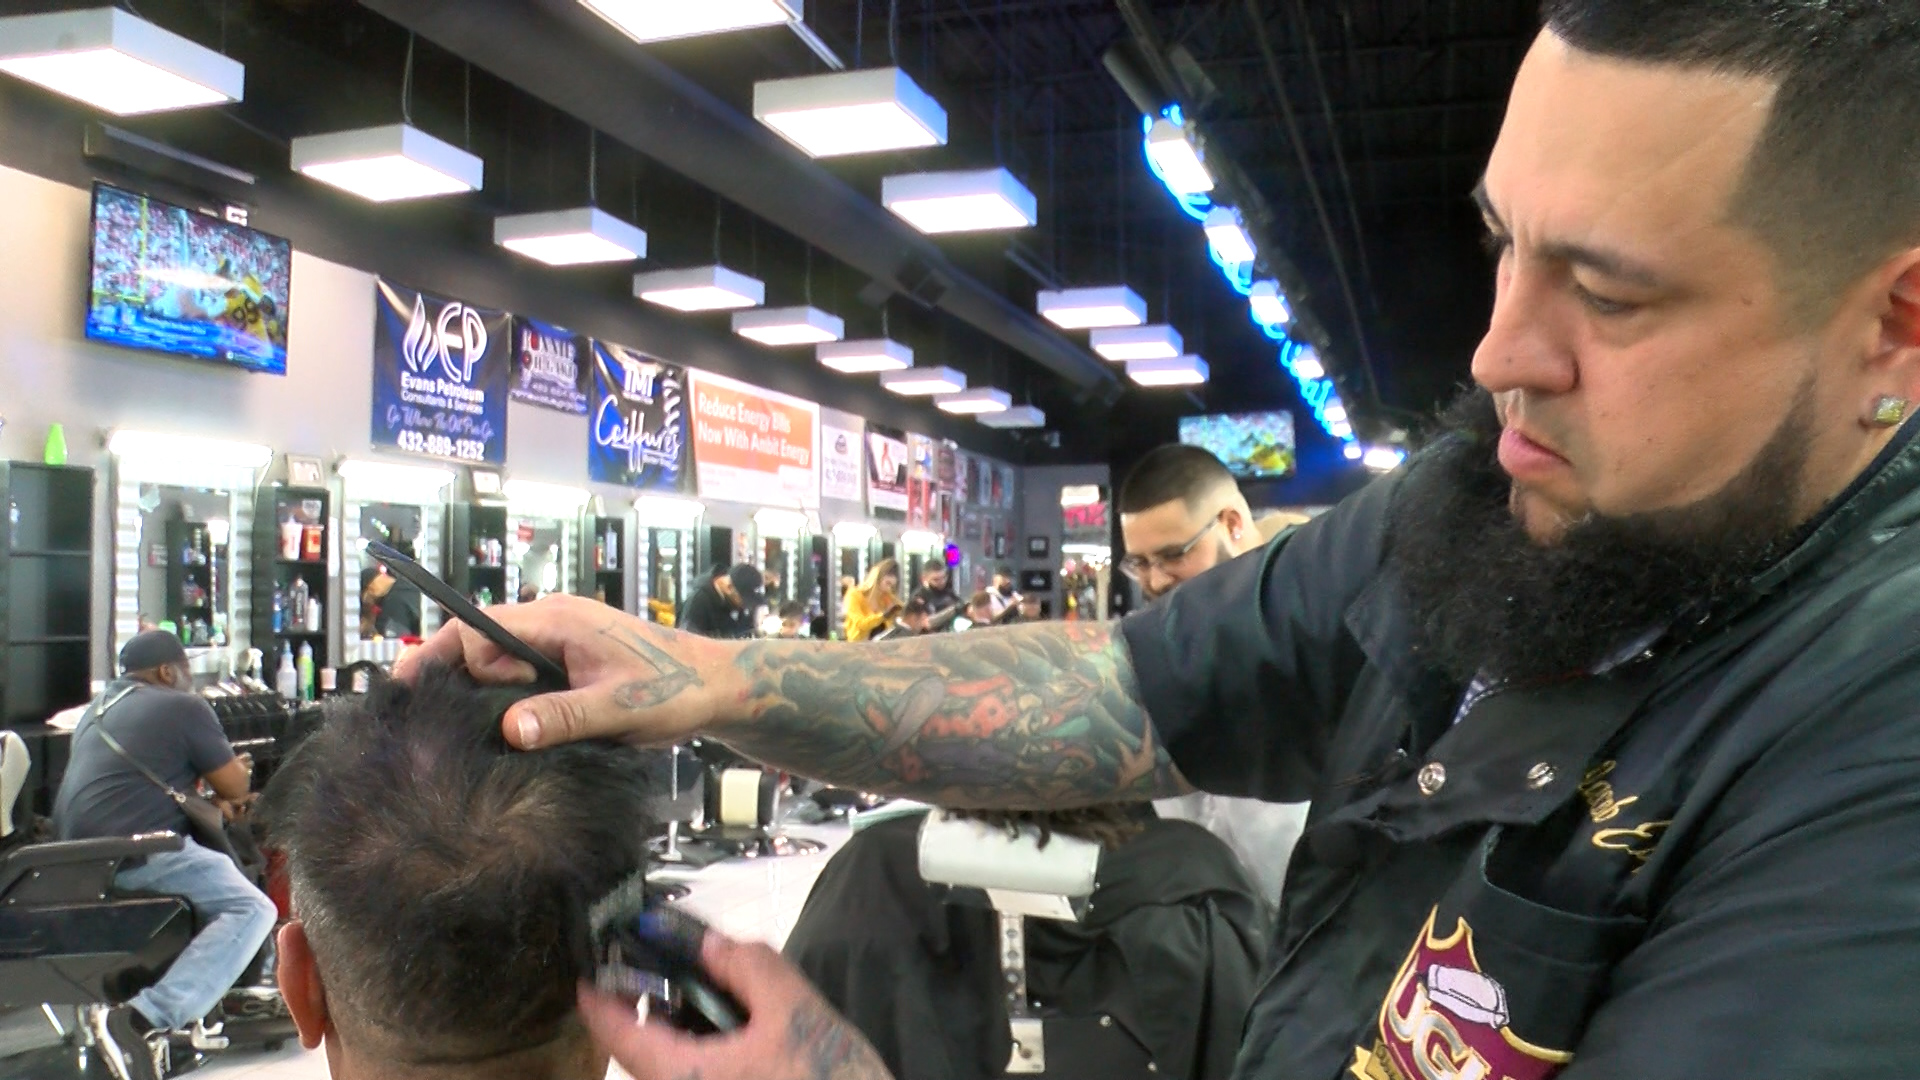 Local barbers oppose bill that looks to abolish licenses statewide